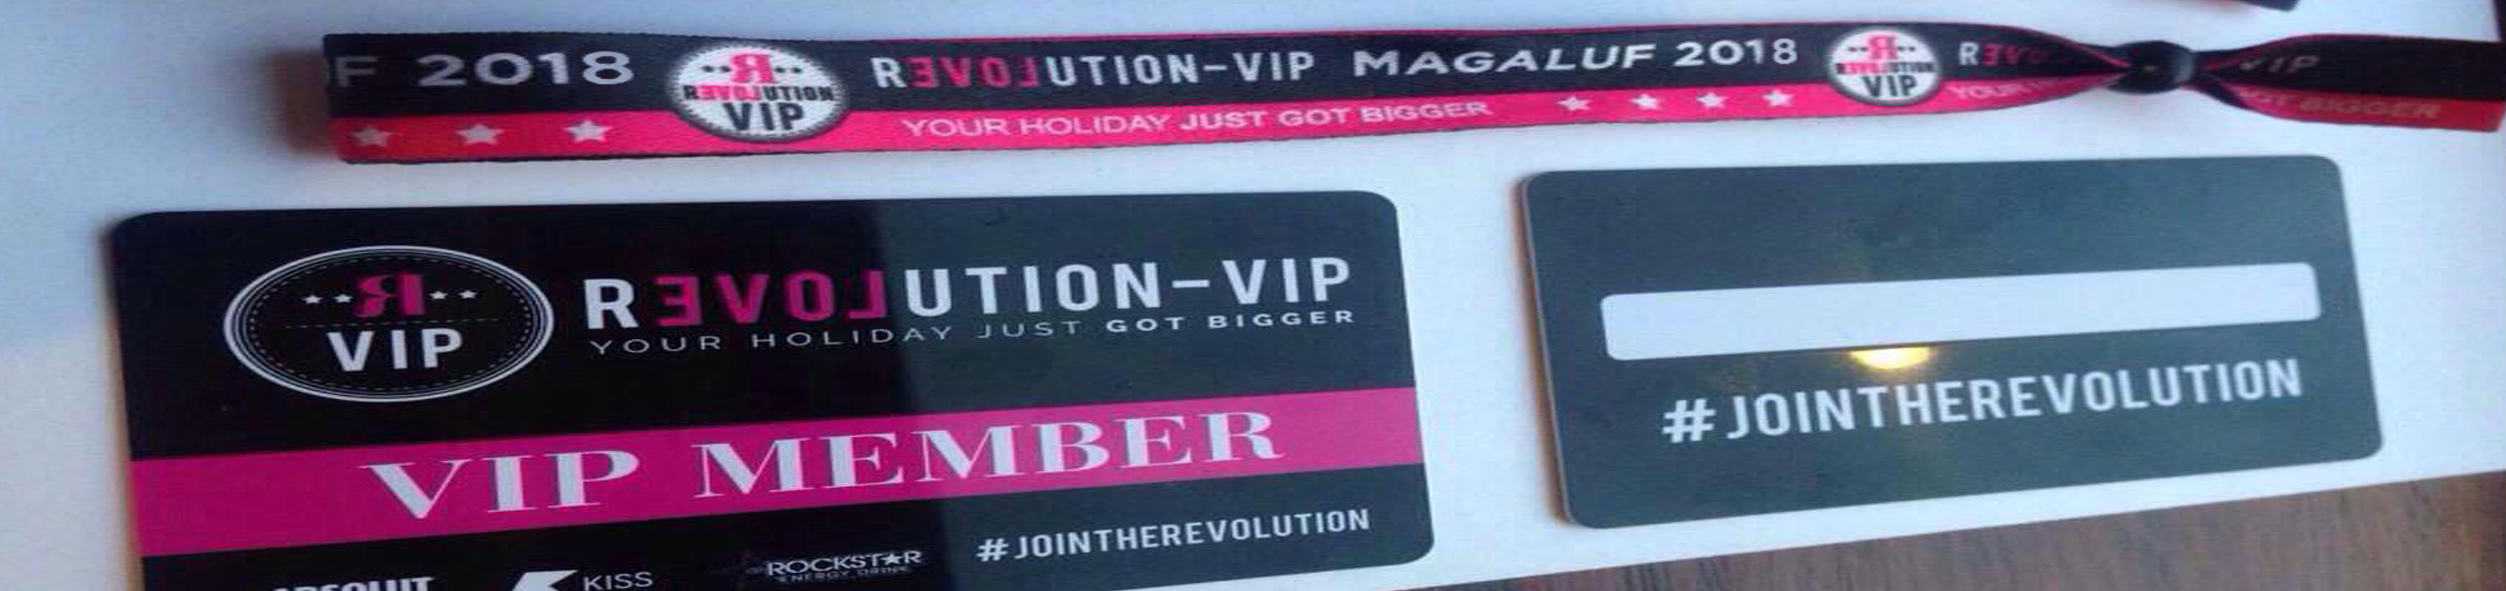 Revolution VIP wristband and card